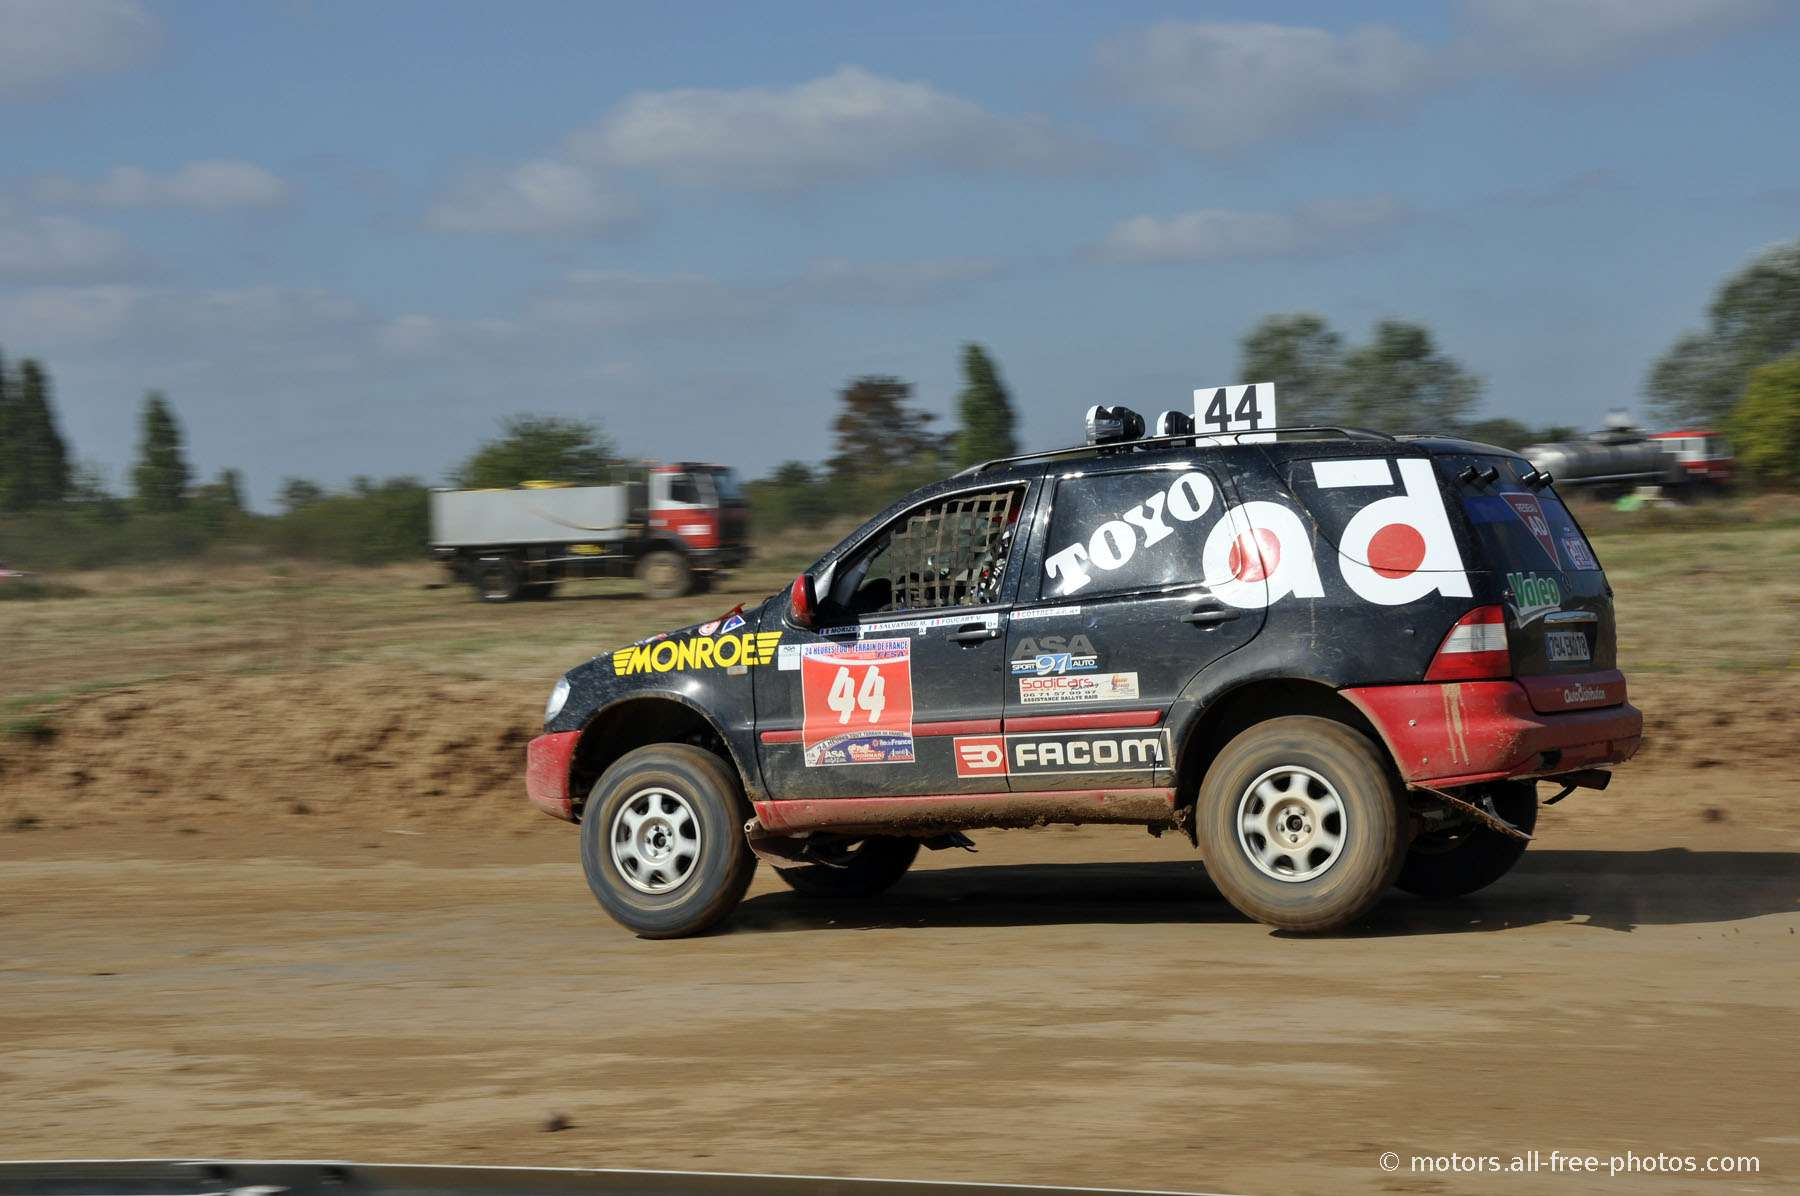 Mercedes ML 430 - Team Autodistribution